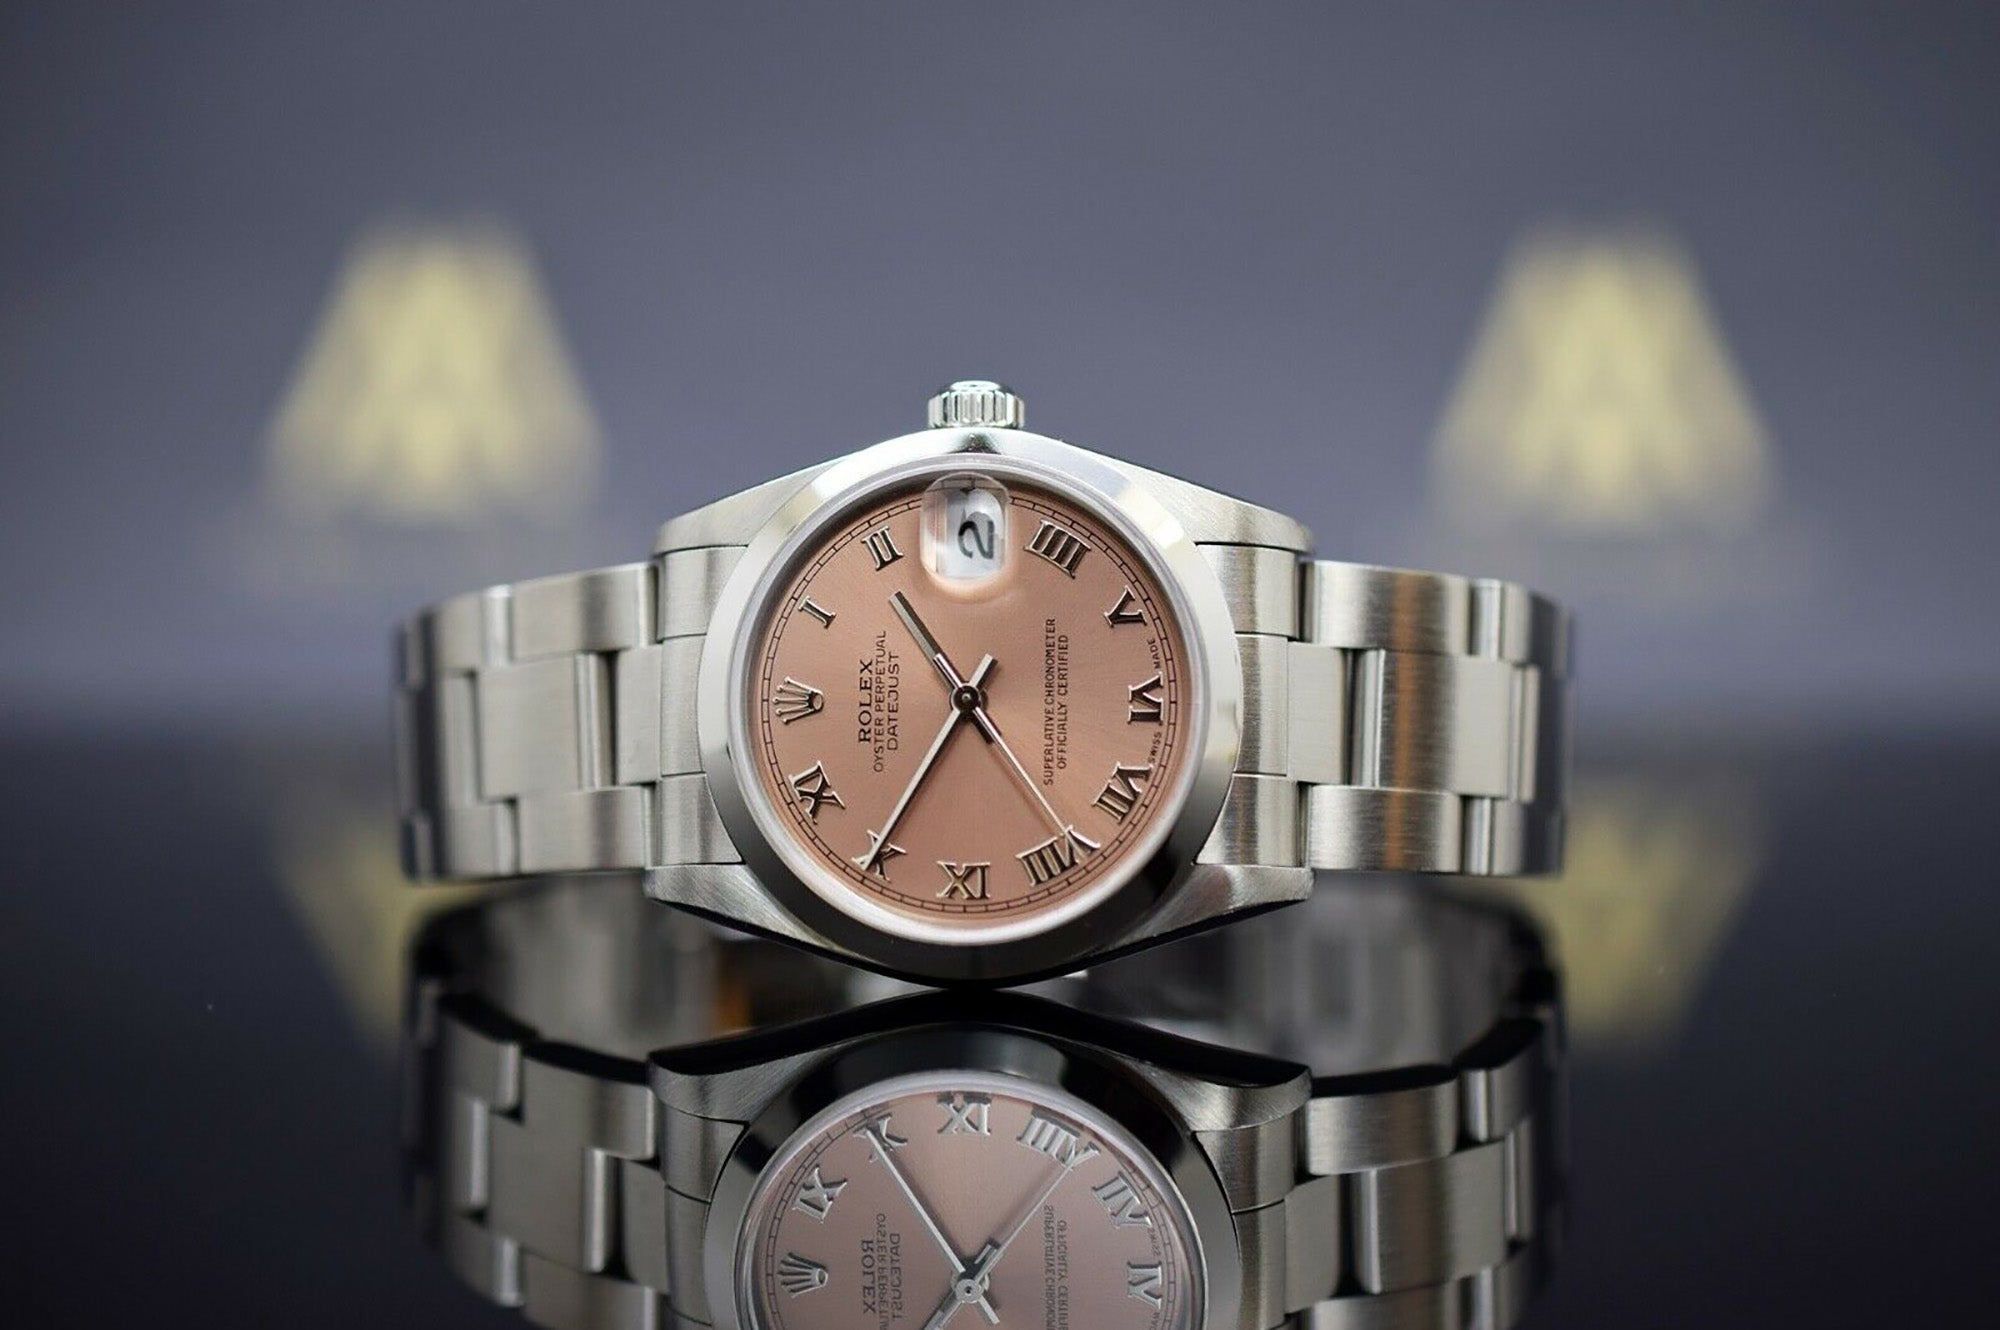 Rolex Oyster Perpetual Datejust - Aus 2002